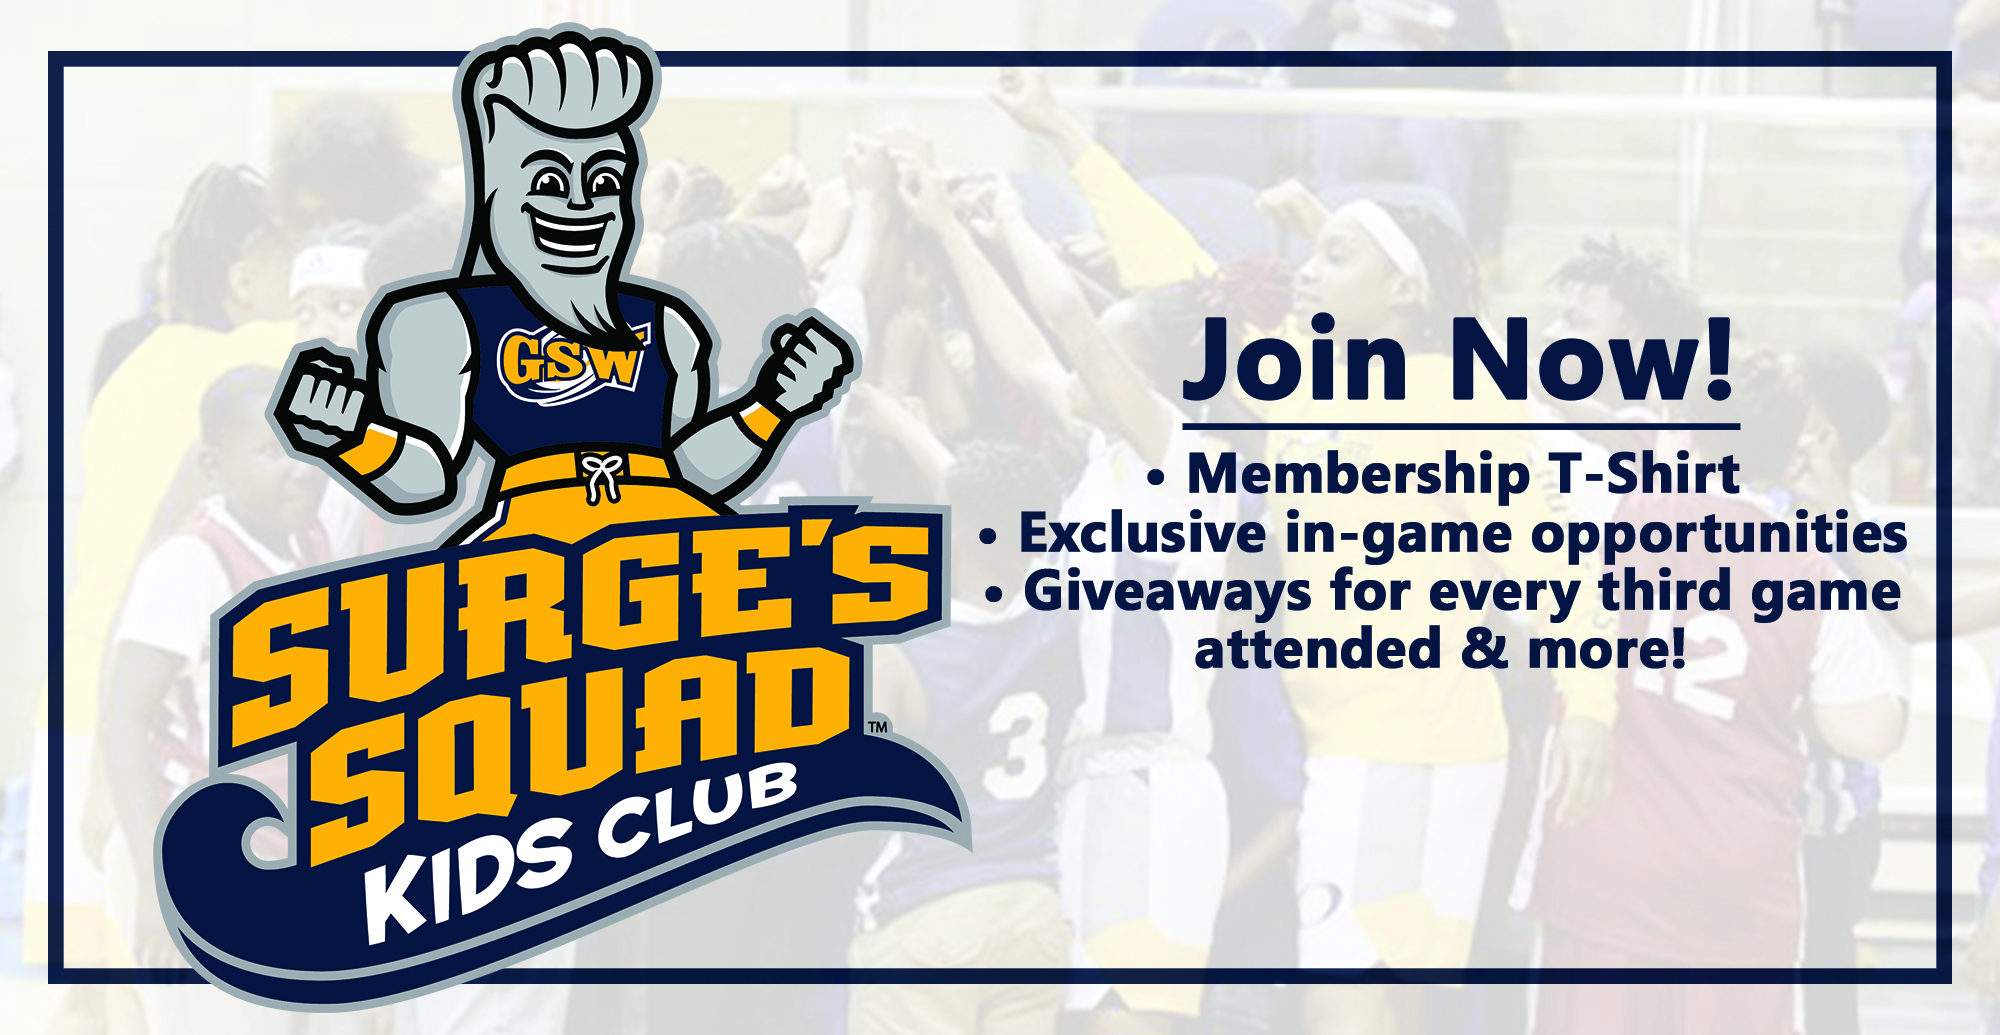 Introducing the All-New Surge's Squad Kids Club